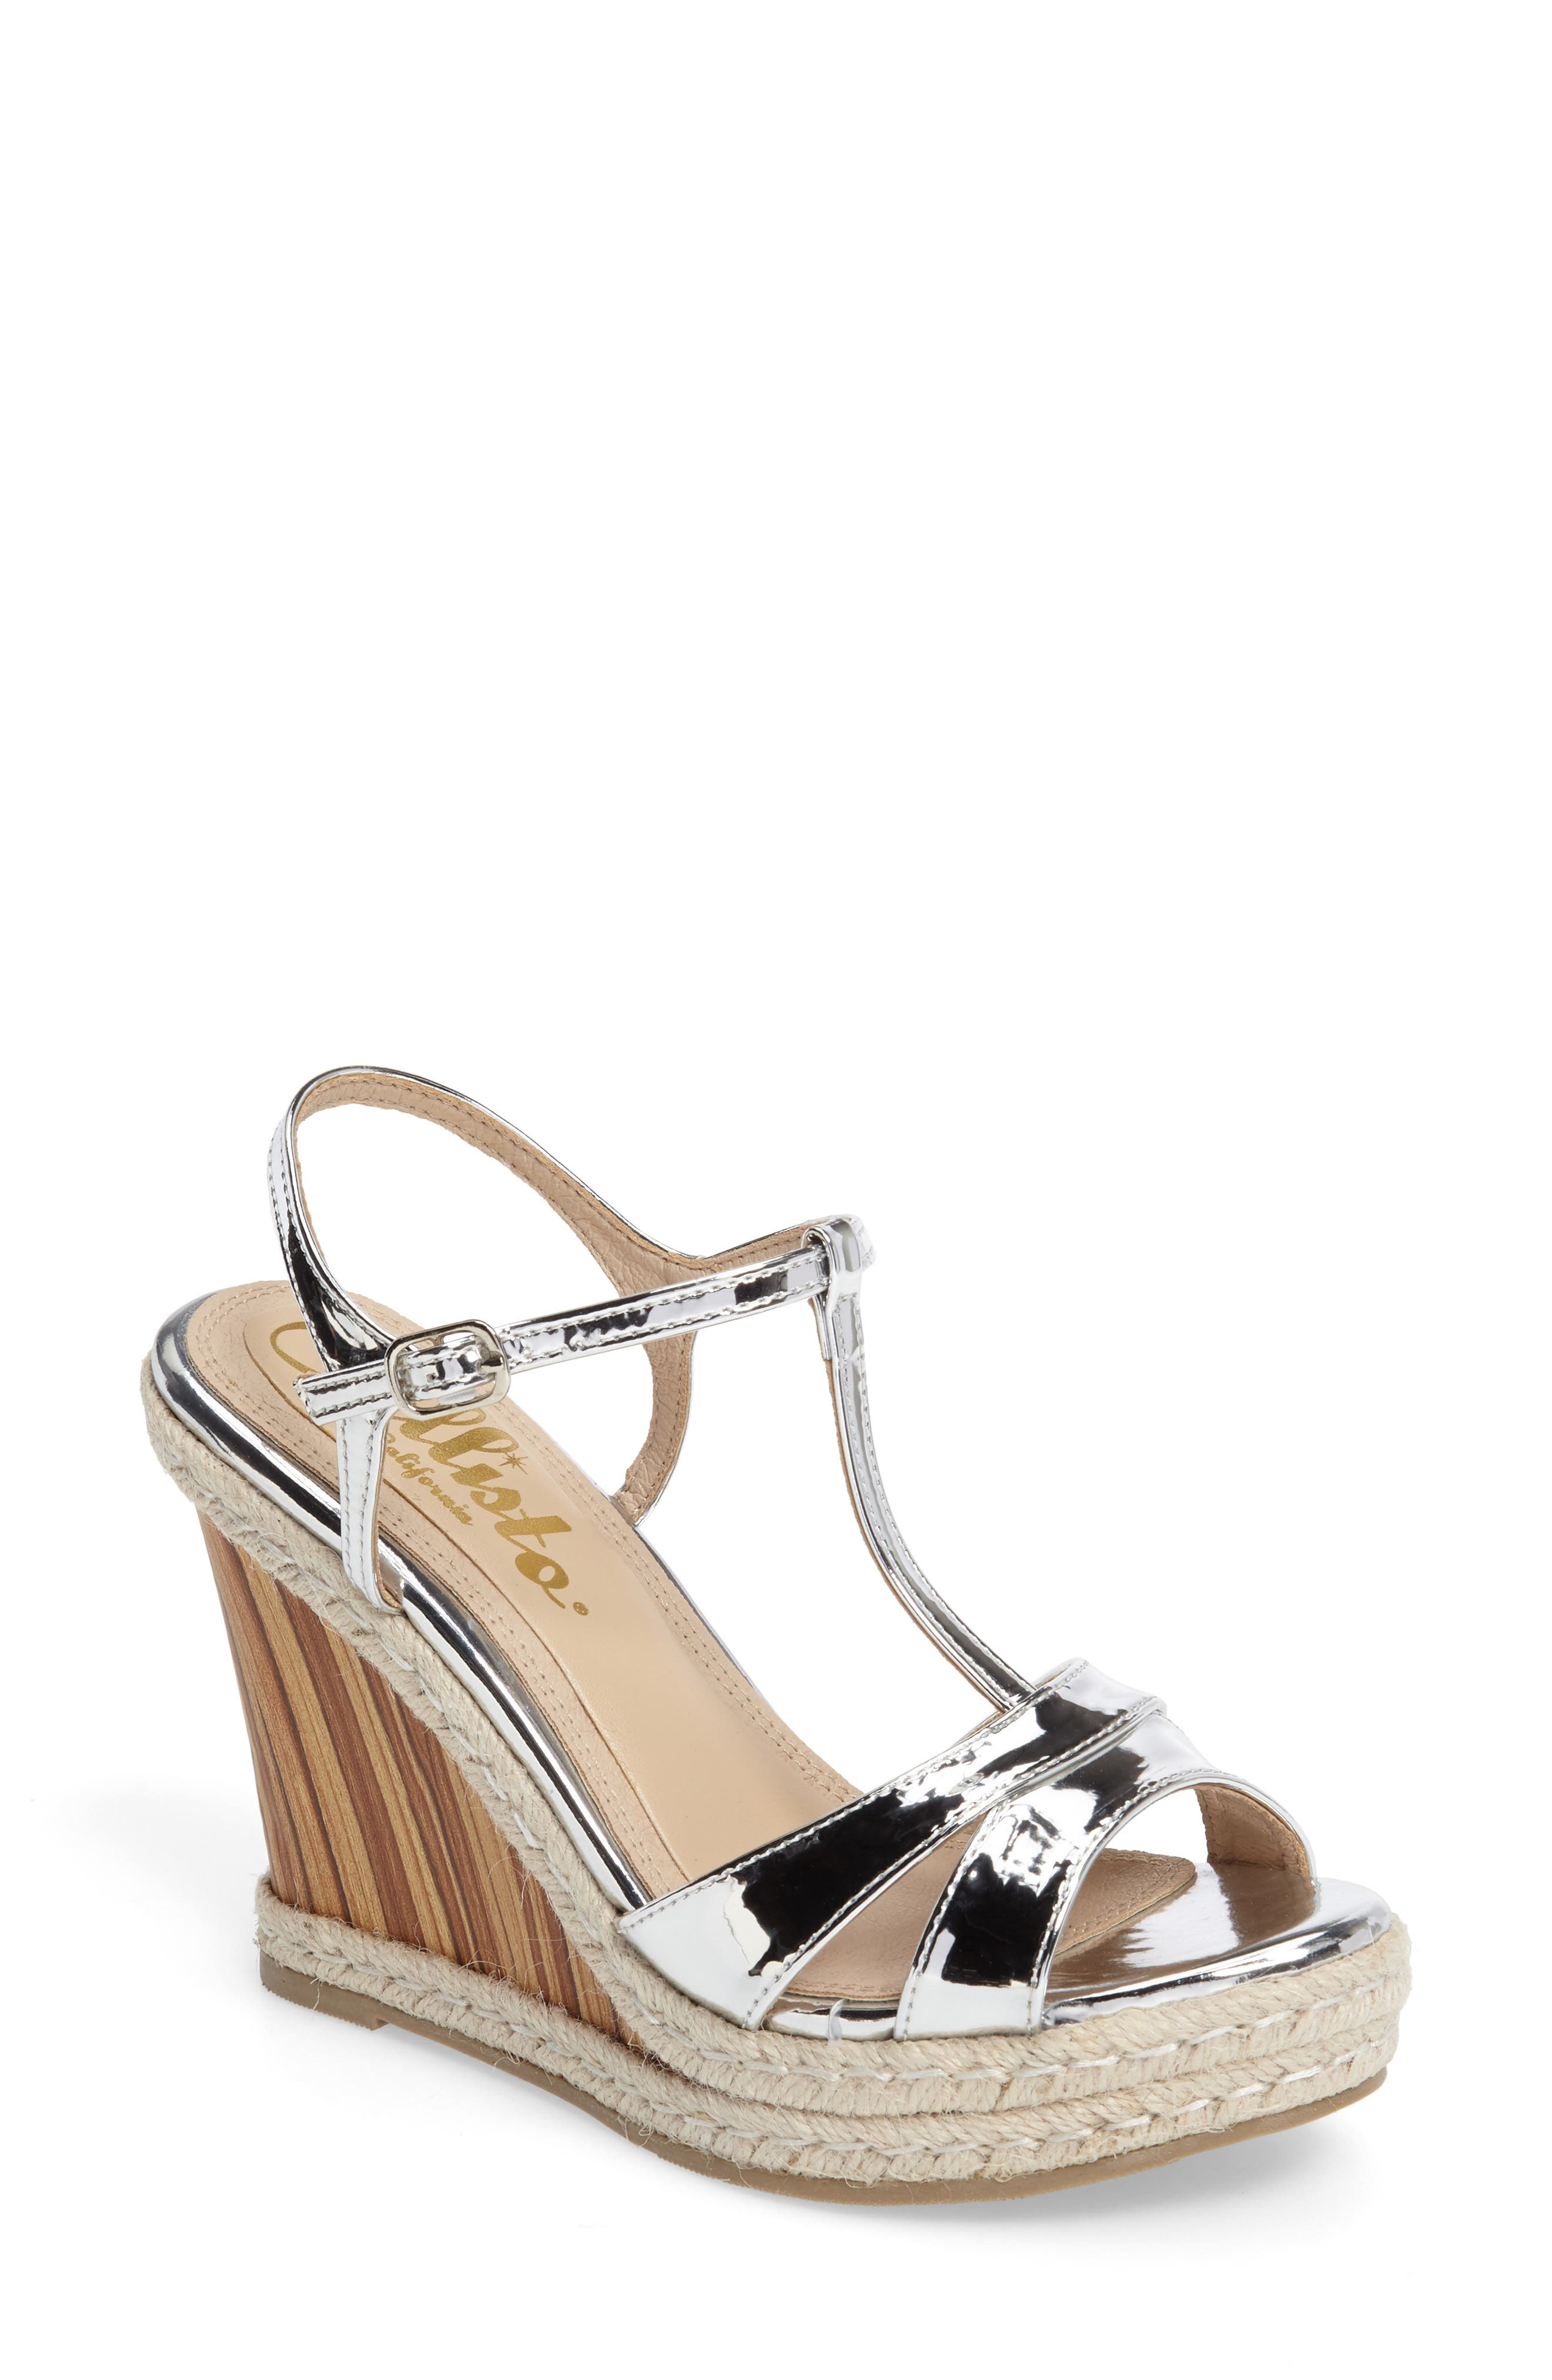 Alinna T-Strap Wedge Sandal,                             Main thumbnail 1, color,                             Silver Faux Leather